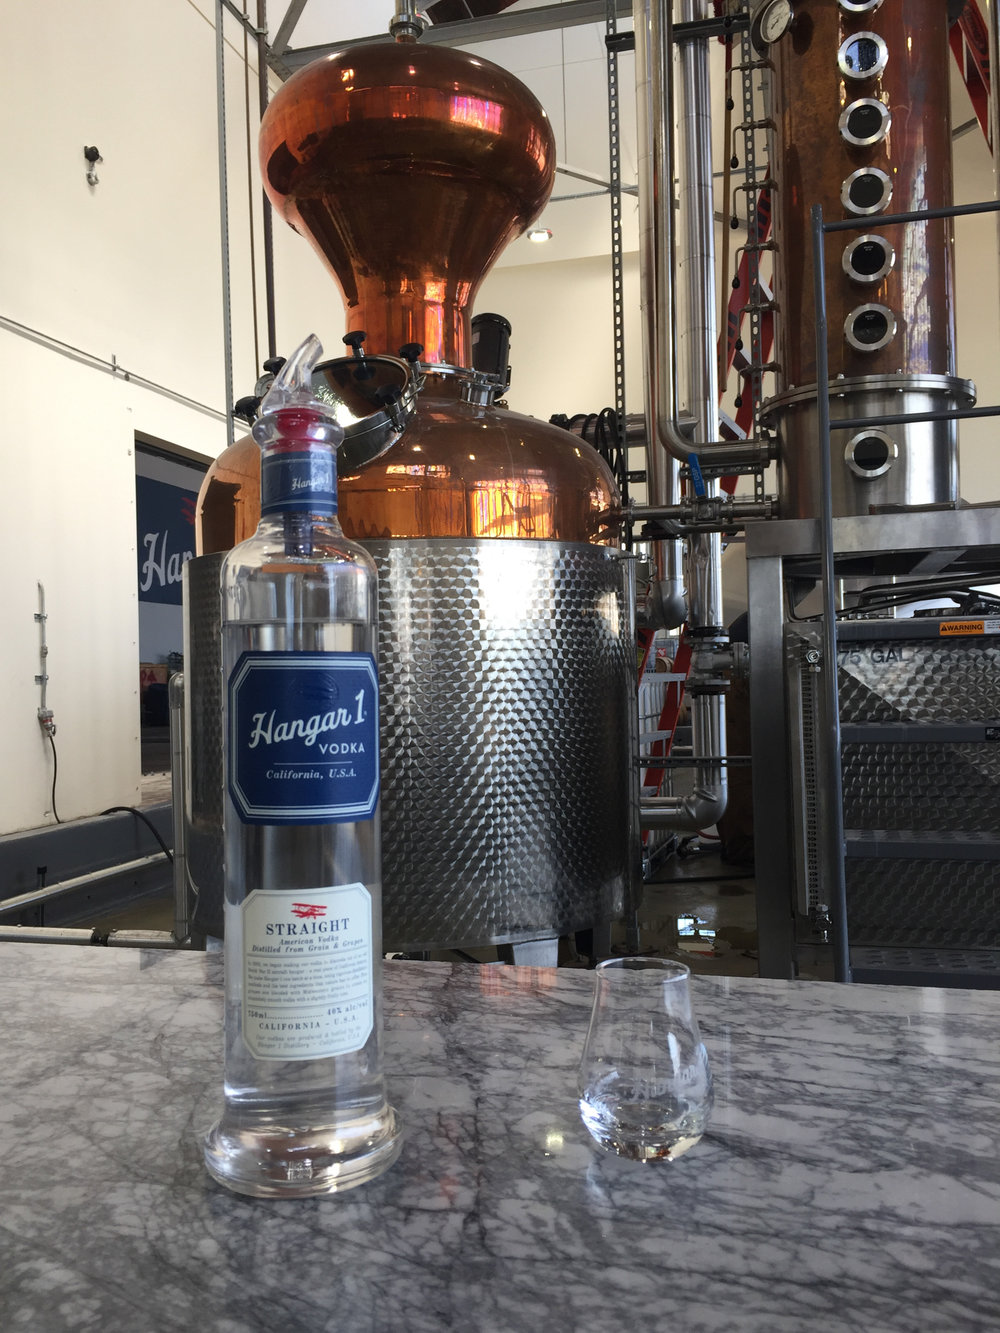 Hangar 1 American Vodka: the finished product